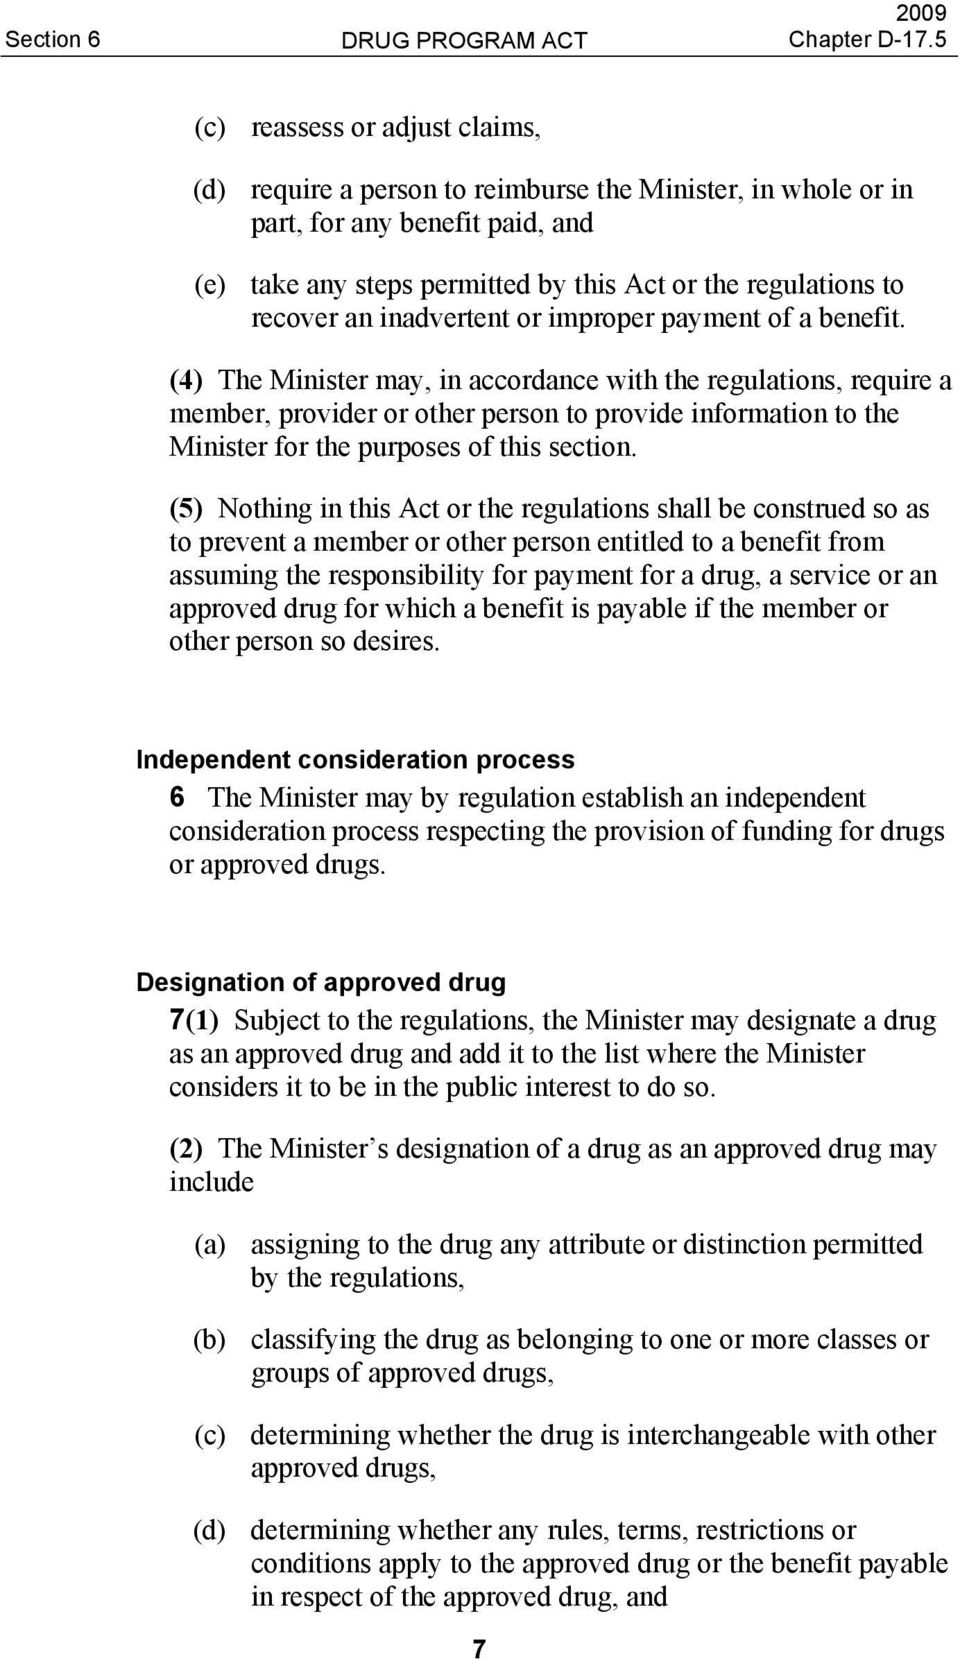 (4) The Minister may, in accordance with the regulations, require a member, provider or other person to provide information to the Minister for the purposes of this section.